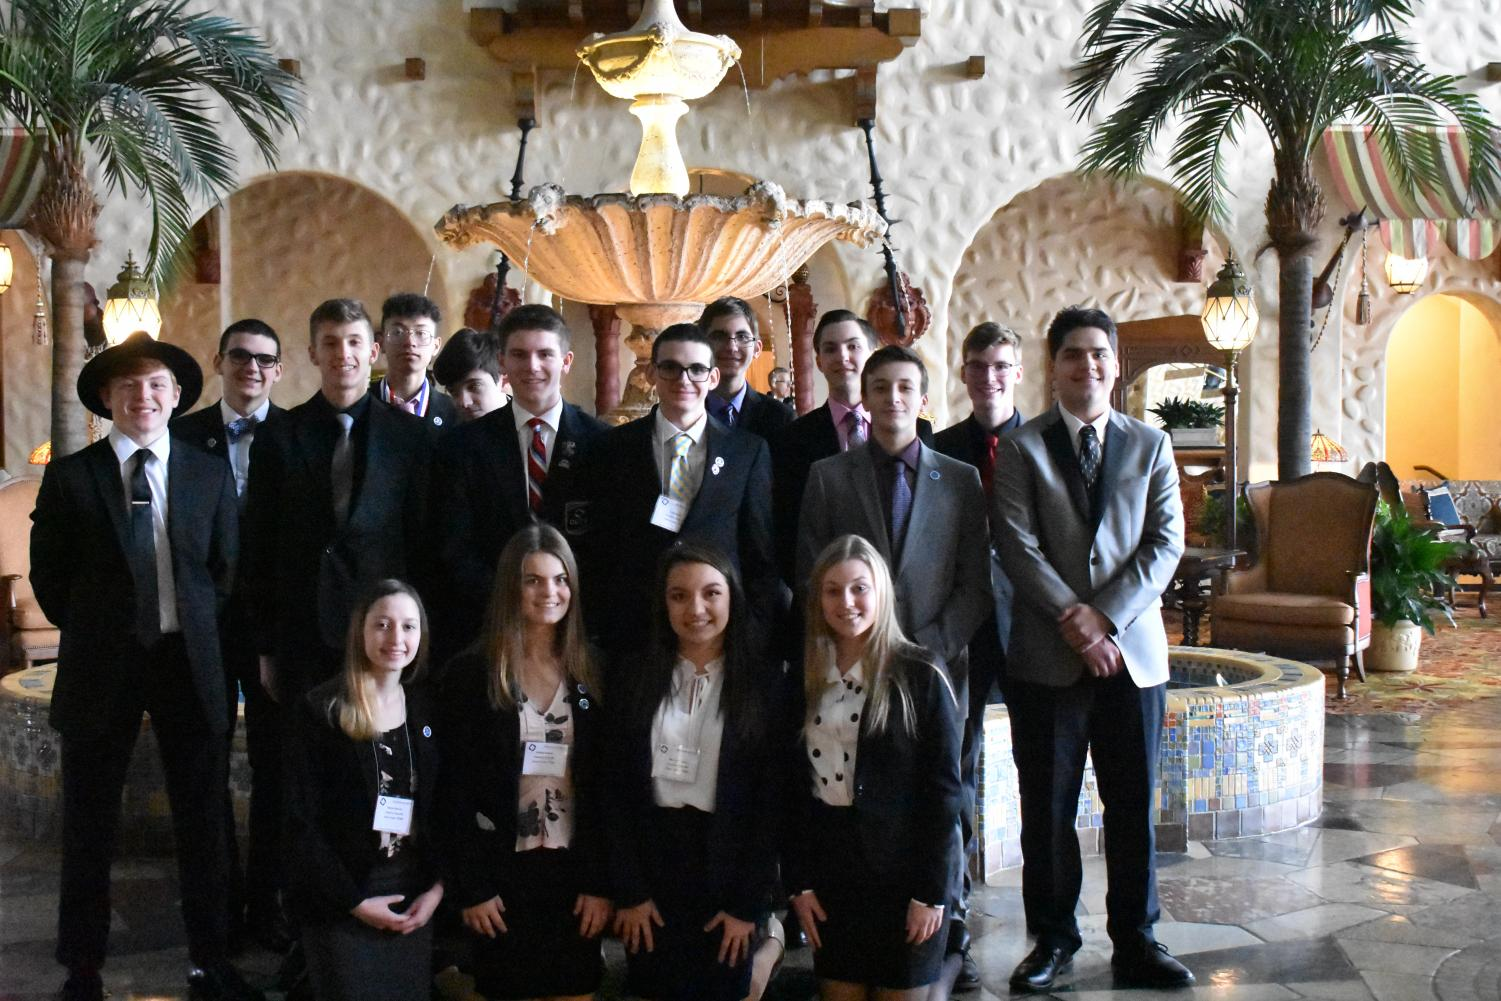 Following the grand awards ceremony, the state competitors took a group photo at the Hotel Hershey on Feb. 22.